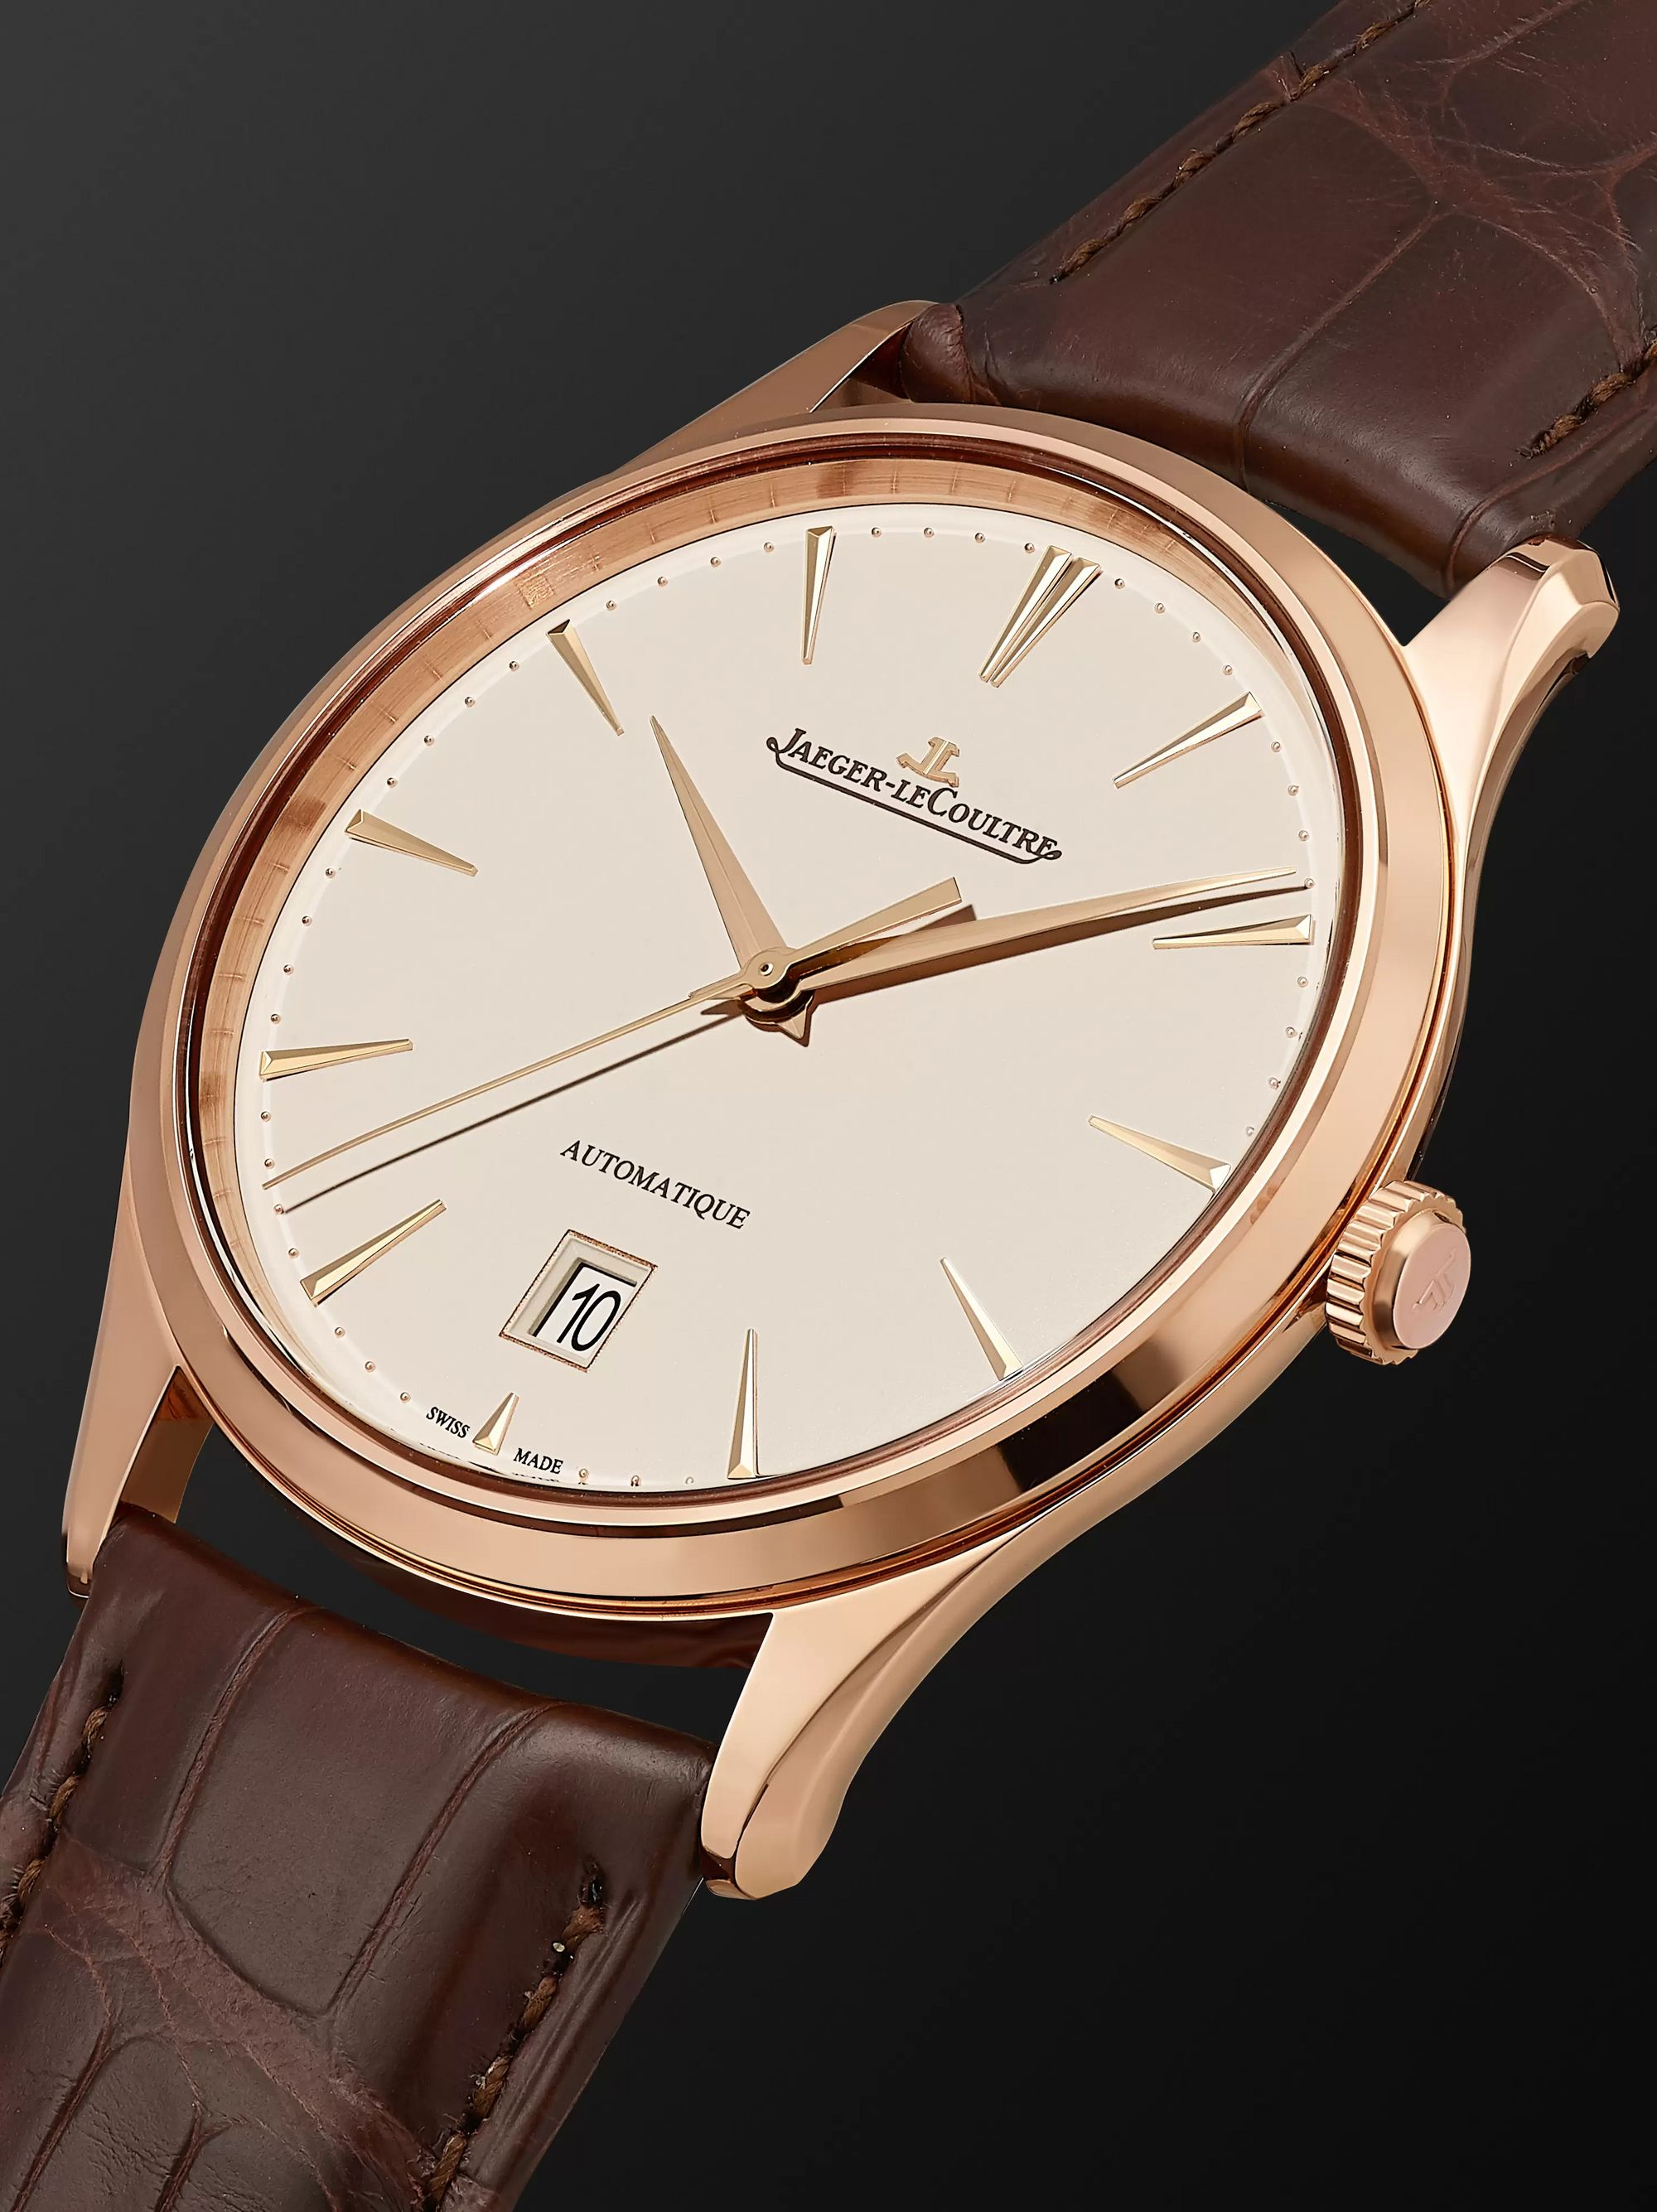 Jaeger-LeCoultre Master Ultra Thin Date Automatic 39mm 18-Karat Rose Gold and Alligator Watch, Ref No. 1232510